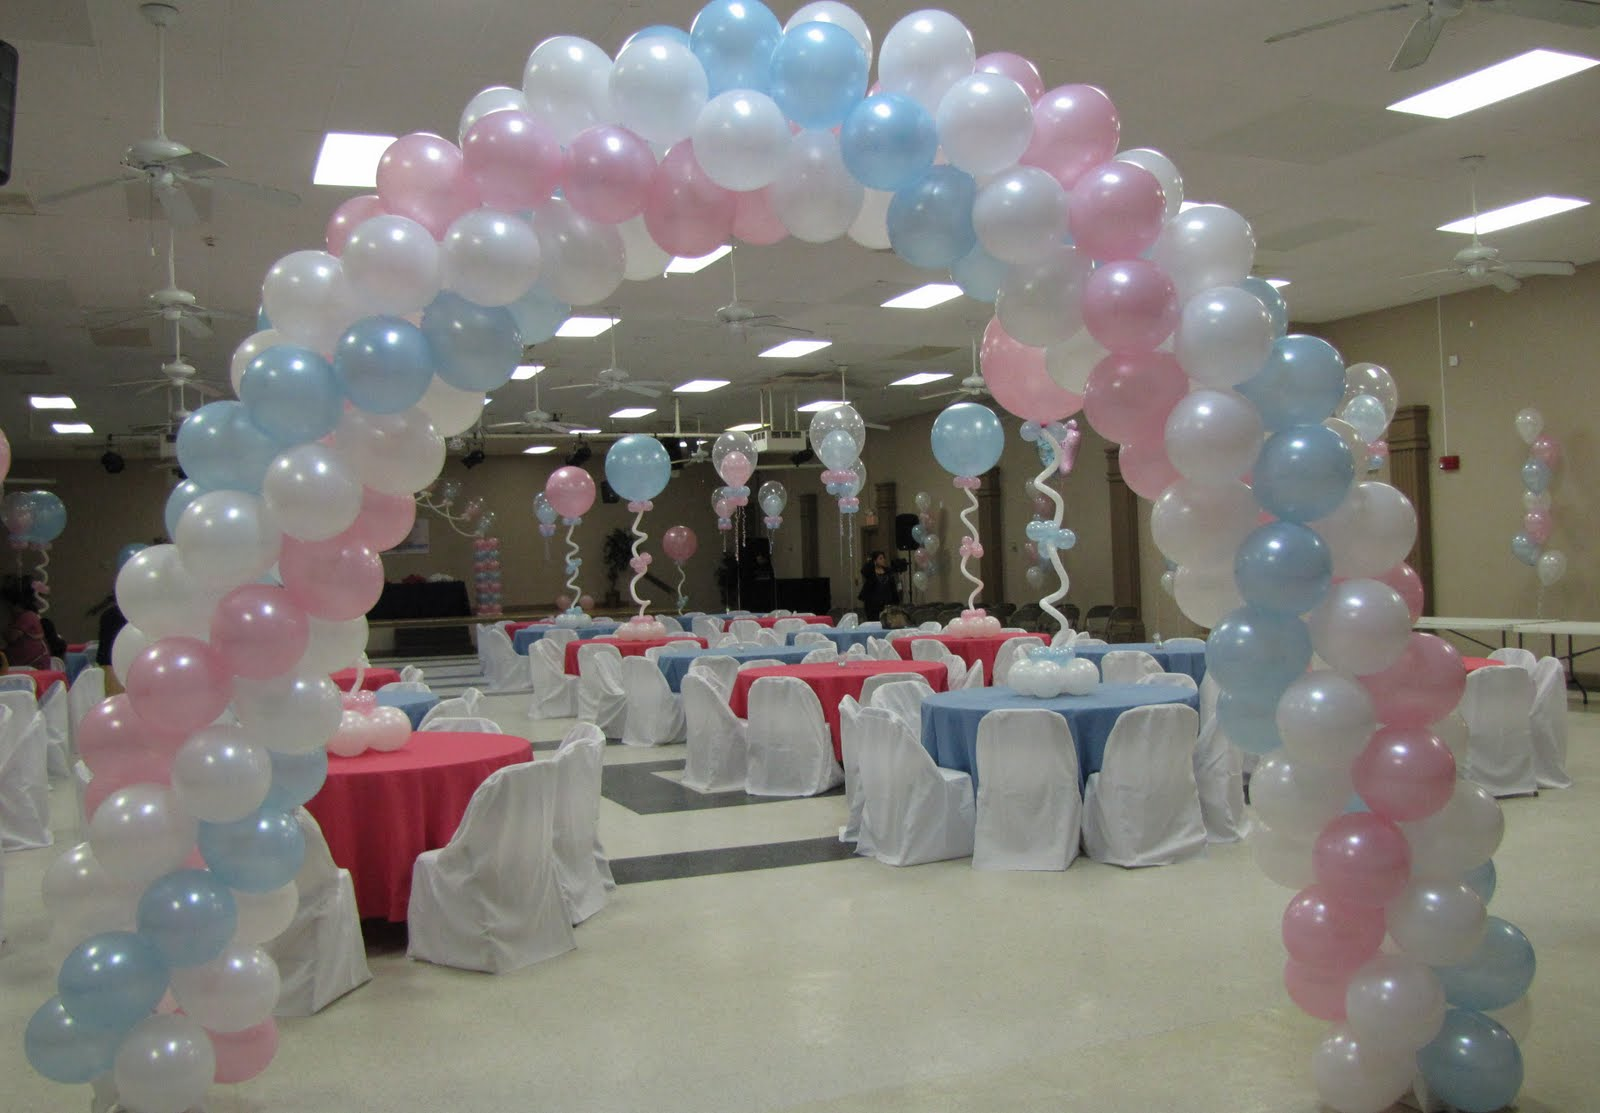 balloons decorations for baby shower party favors ideas On baby showers decoration